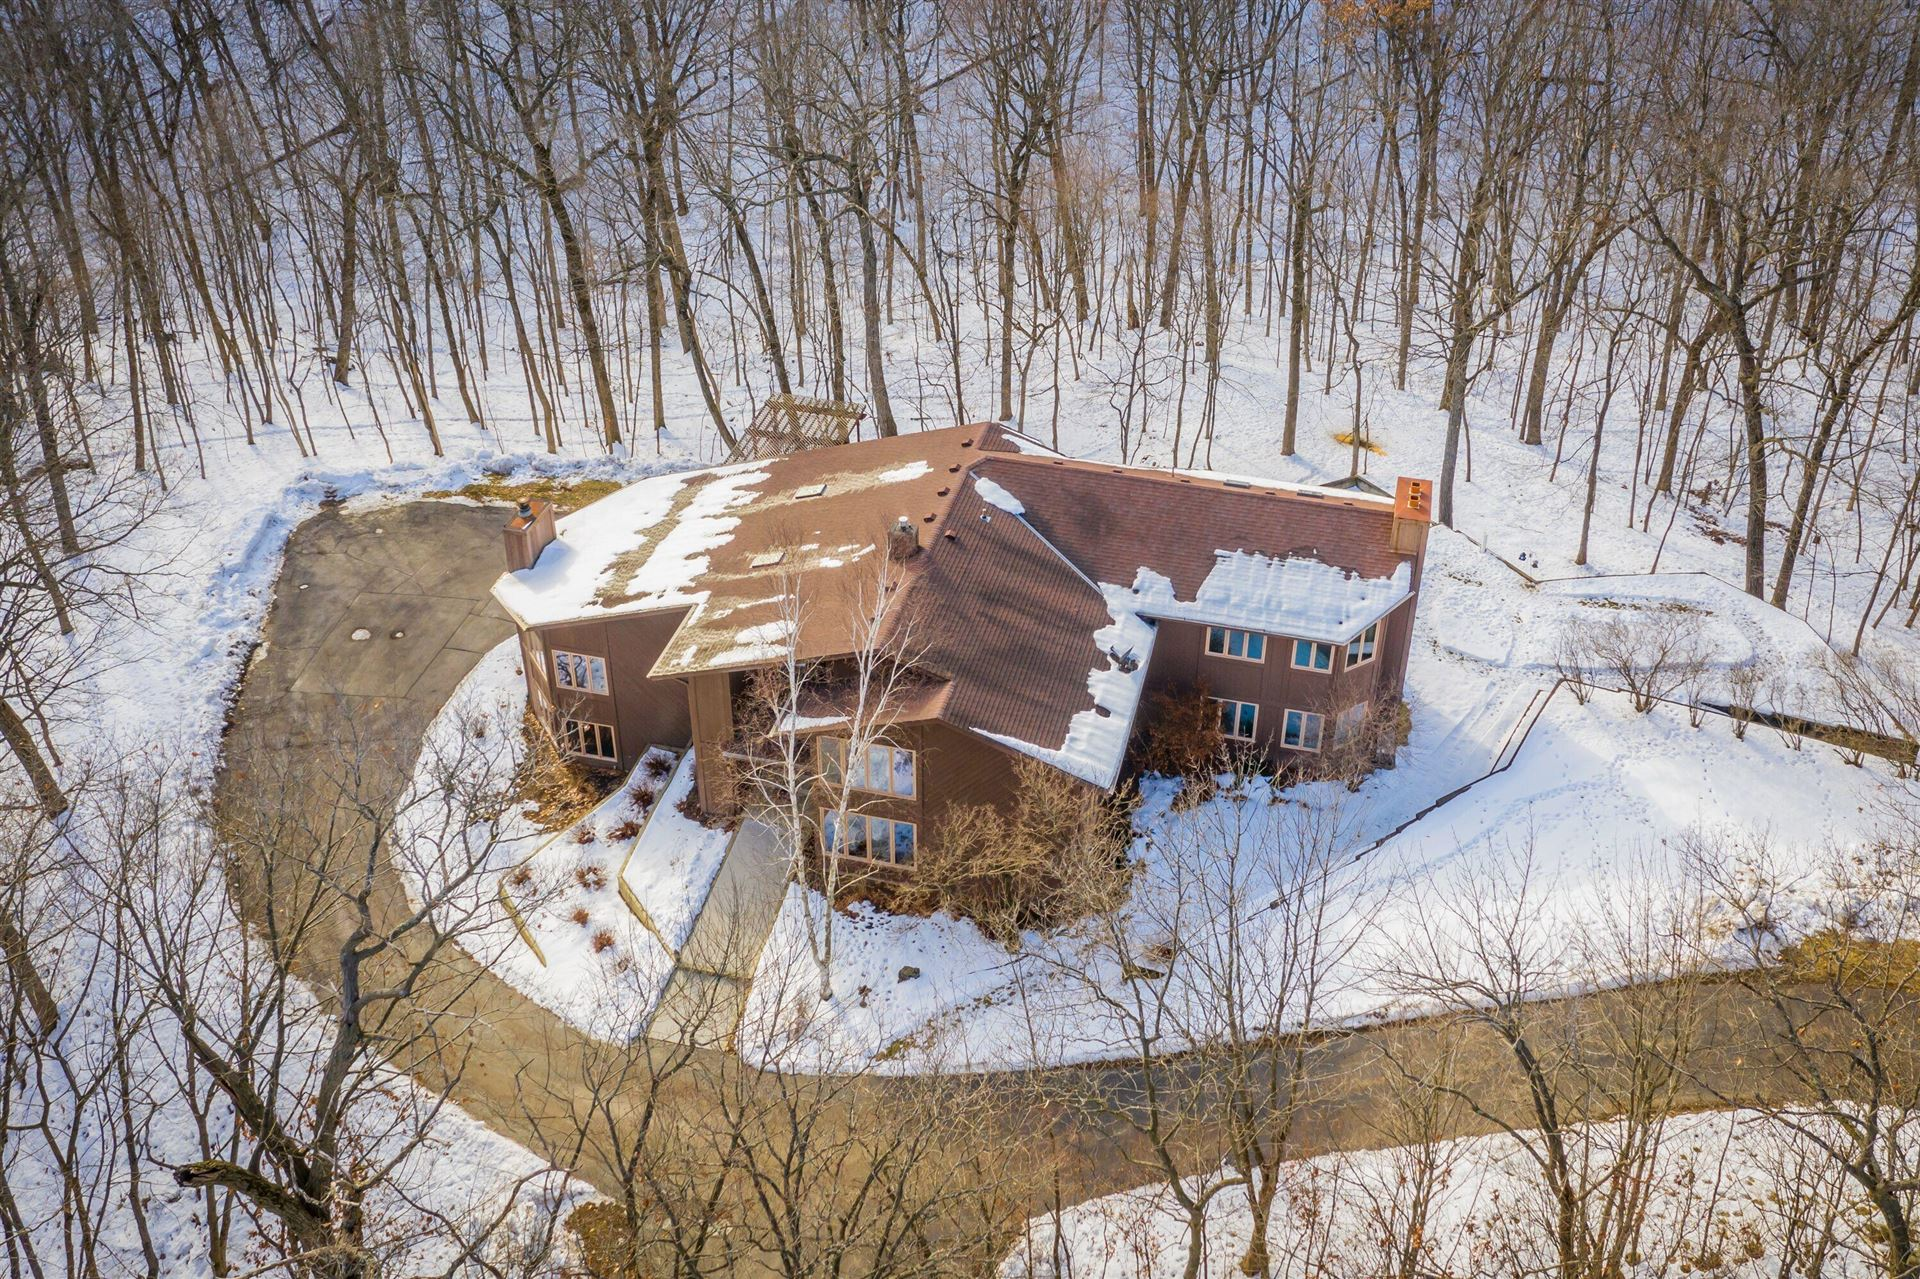 371 Yorkshire Dr, Richfield, WI 53017 - #: 1675737